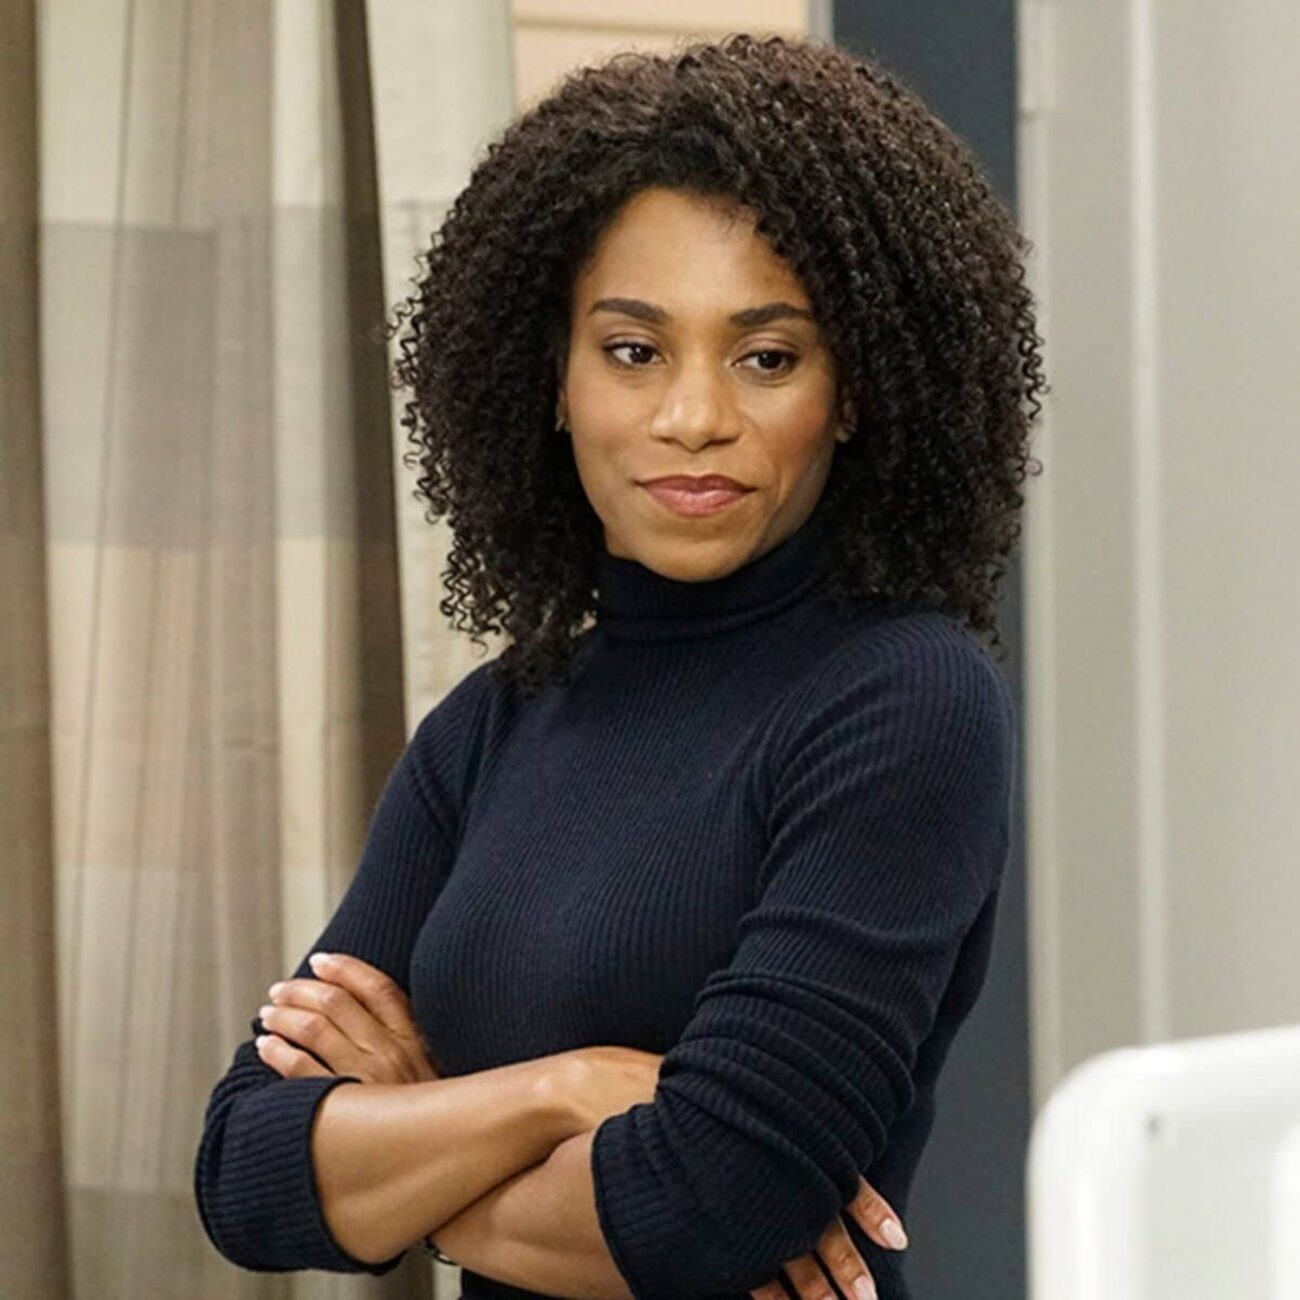 The 'Grey's Anatomy' family is growing but not just for the cameras. Peek at Kelly McCreary's adorable announcement.